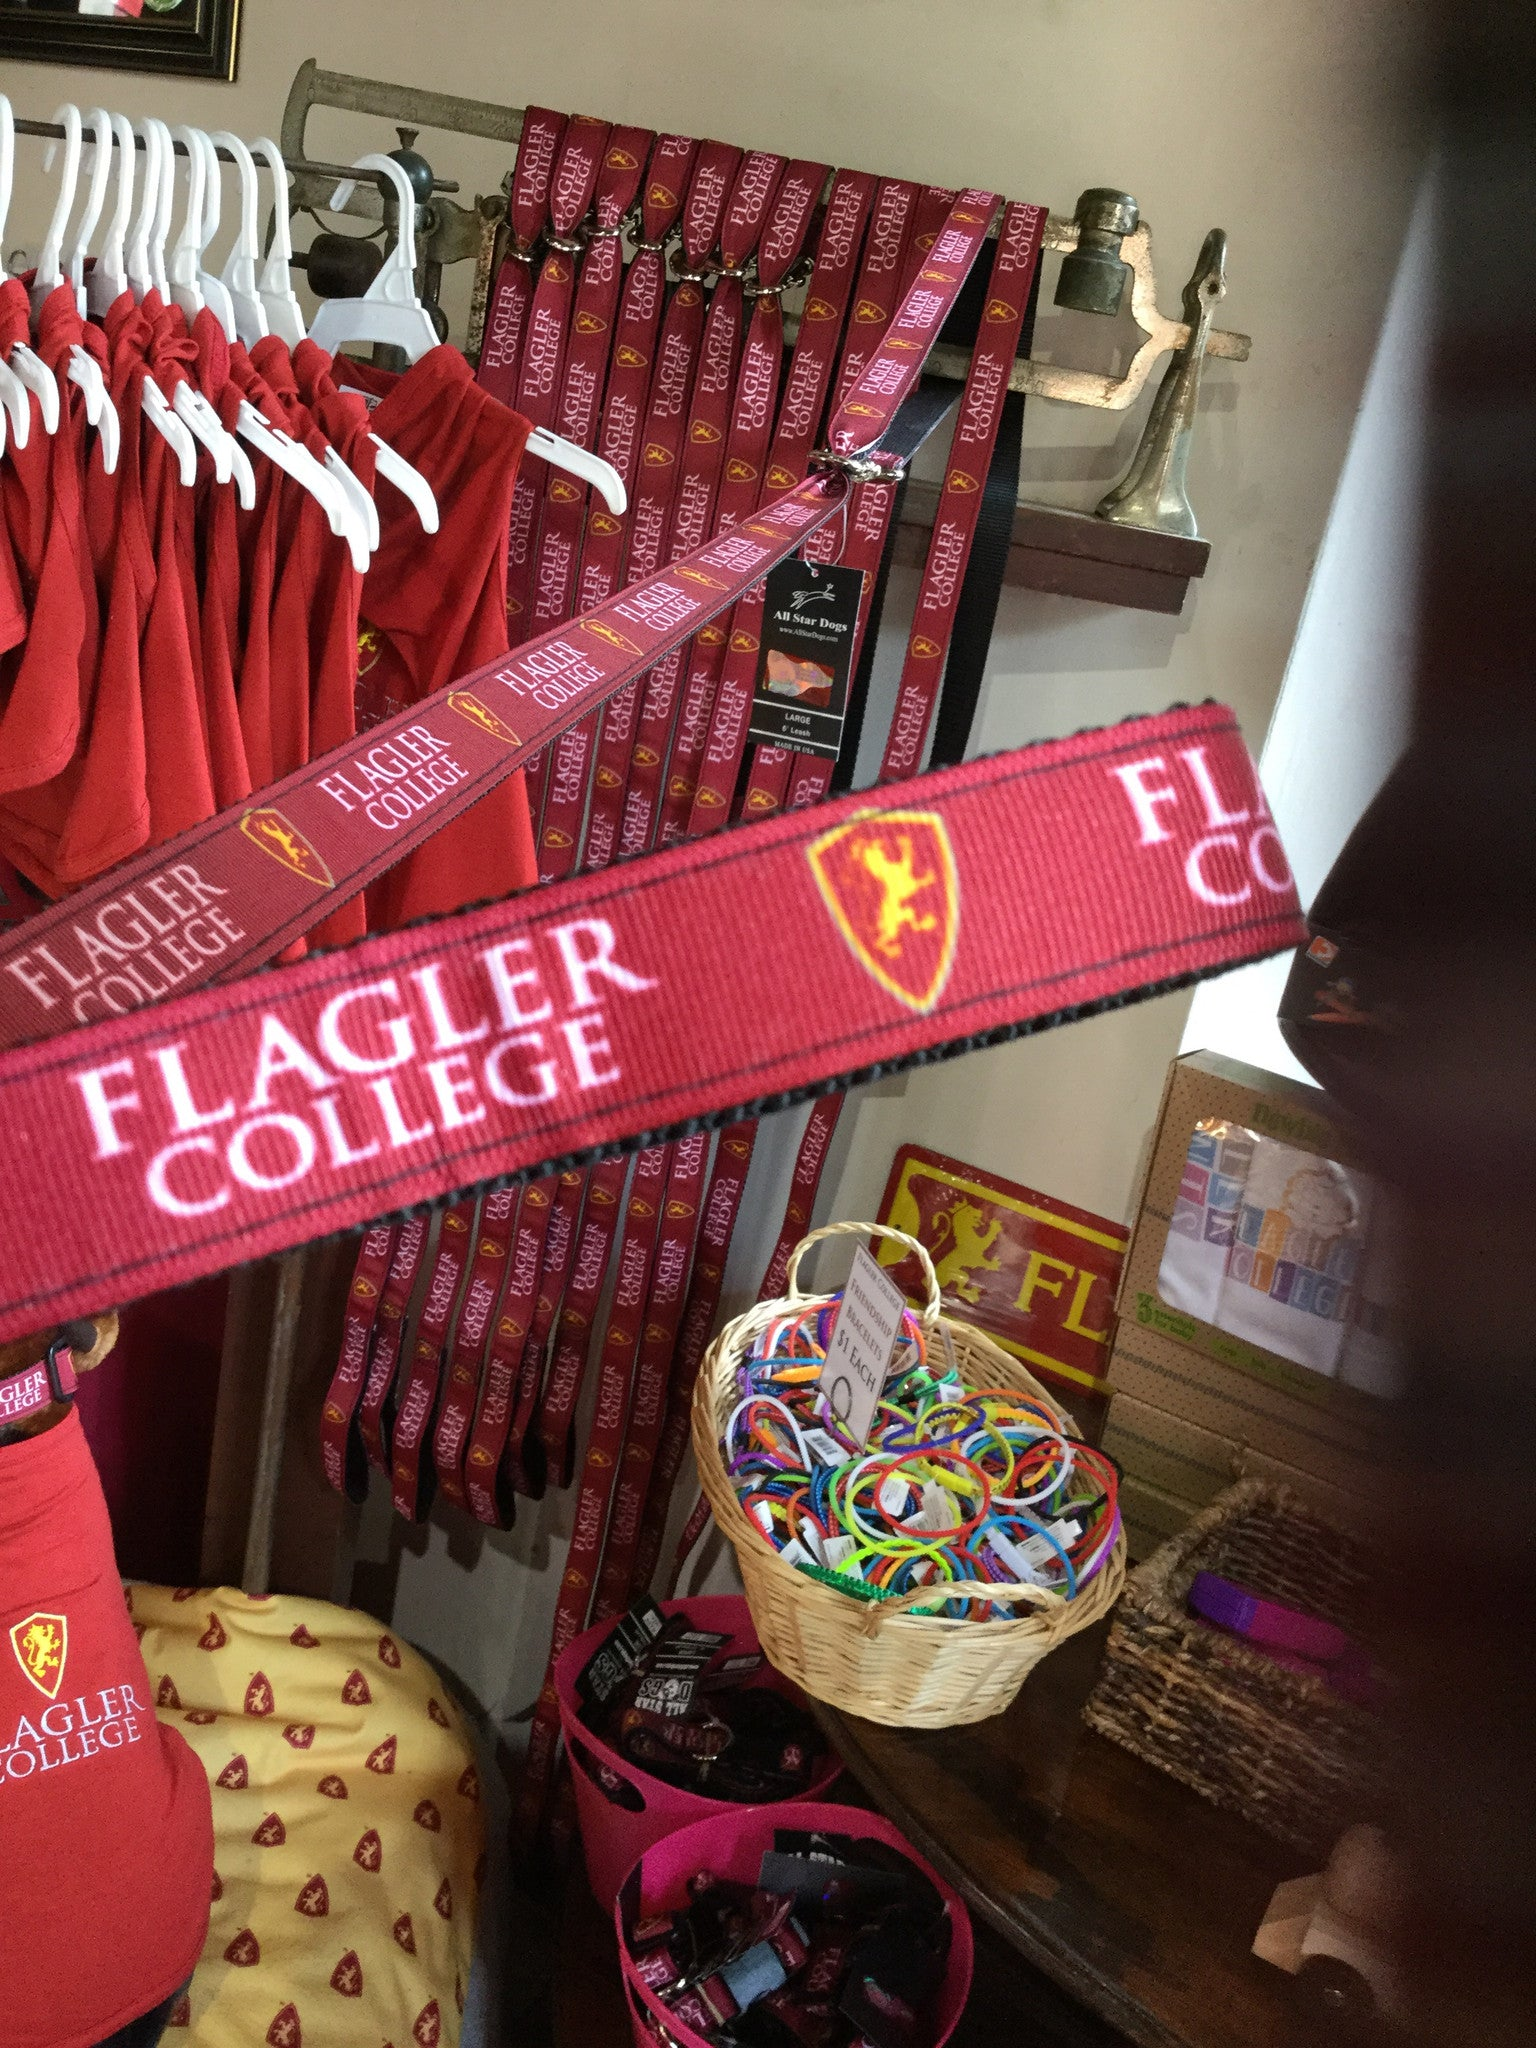 red dog leash with Flagler college printed in white and shield printed in red and yellow